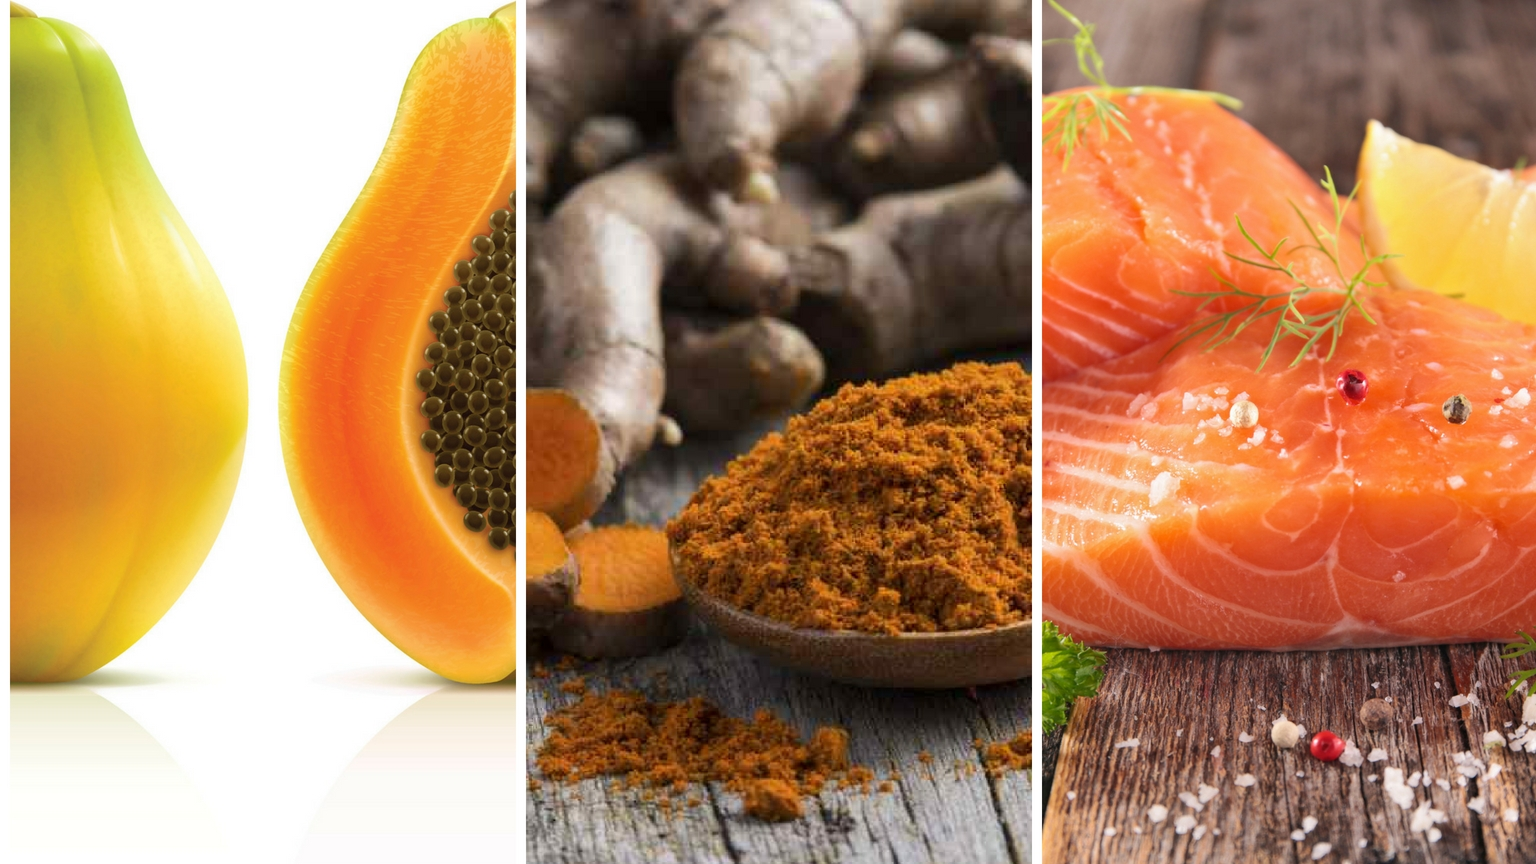 10 Natural Pain Relieving Foods: Why You Need Them in Your Diet